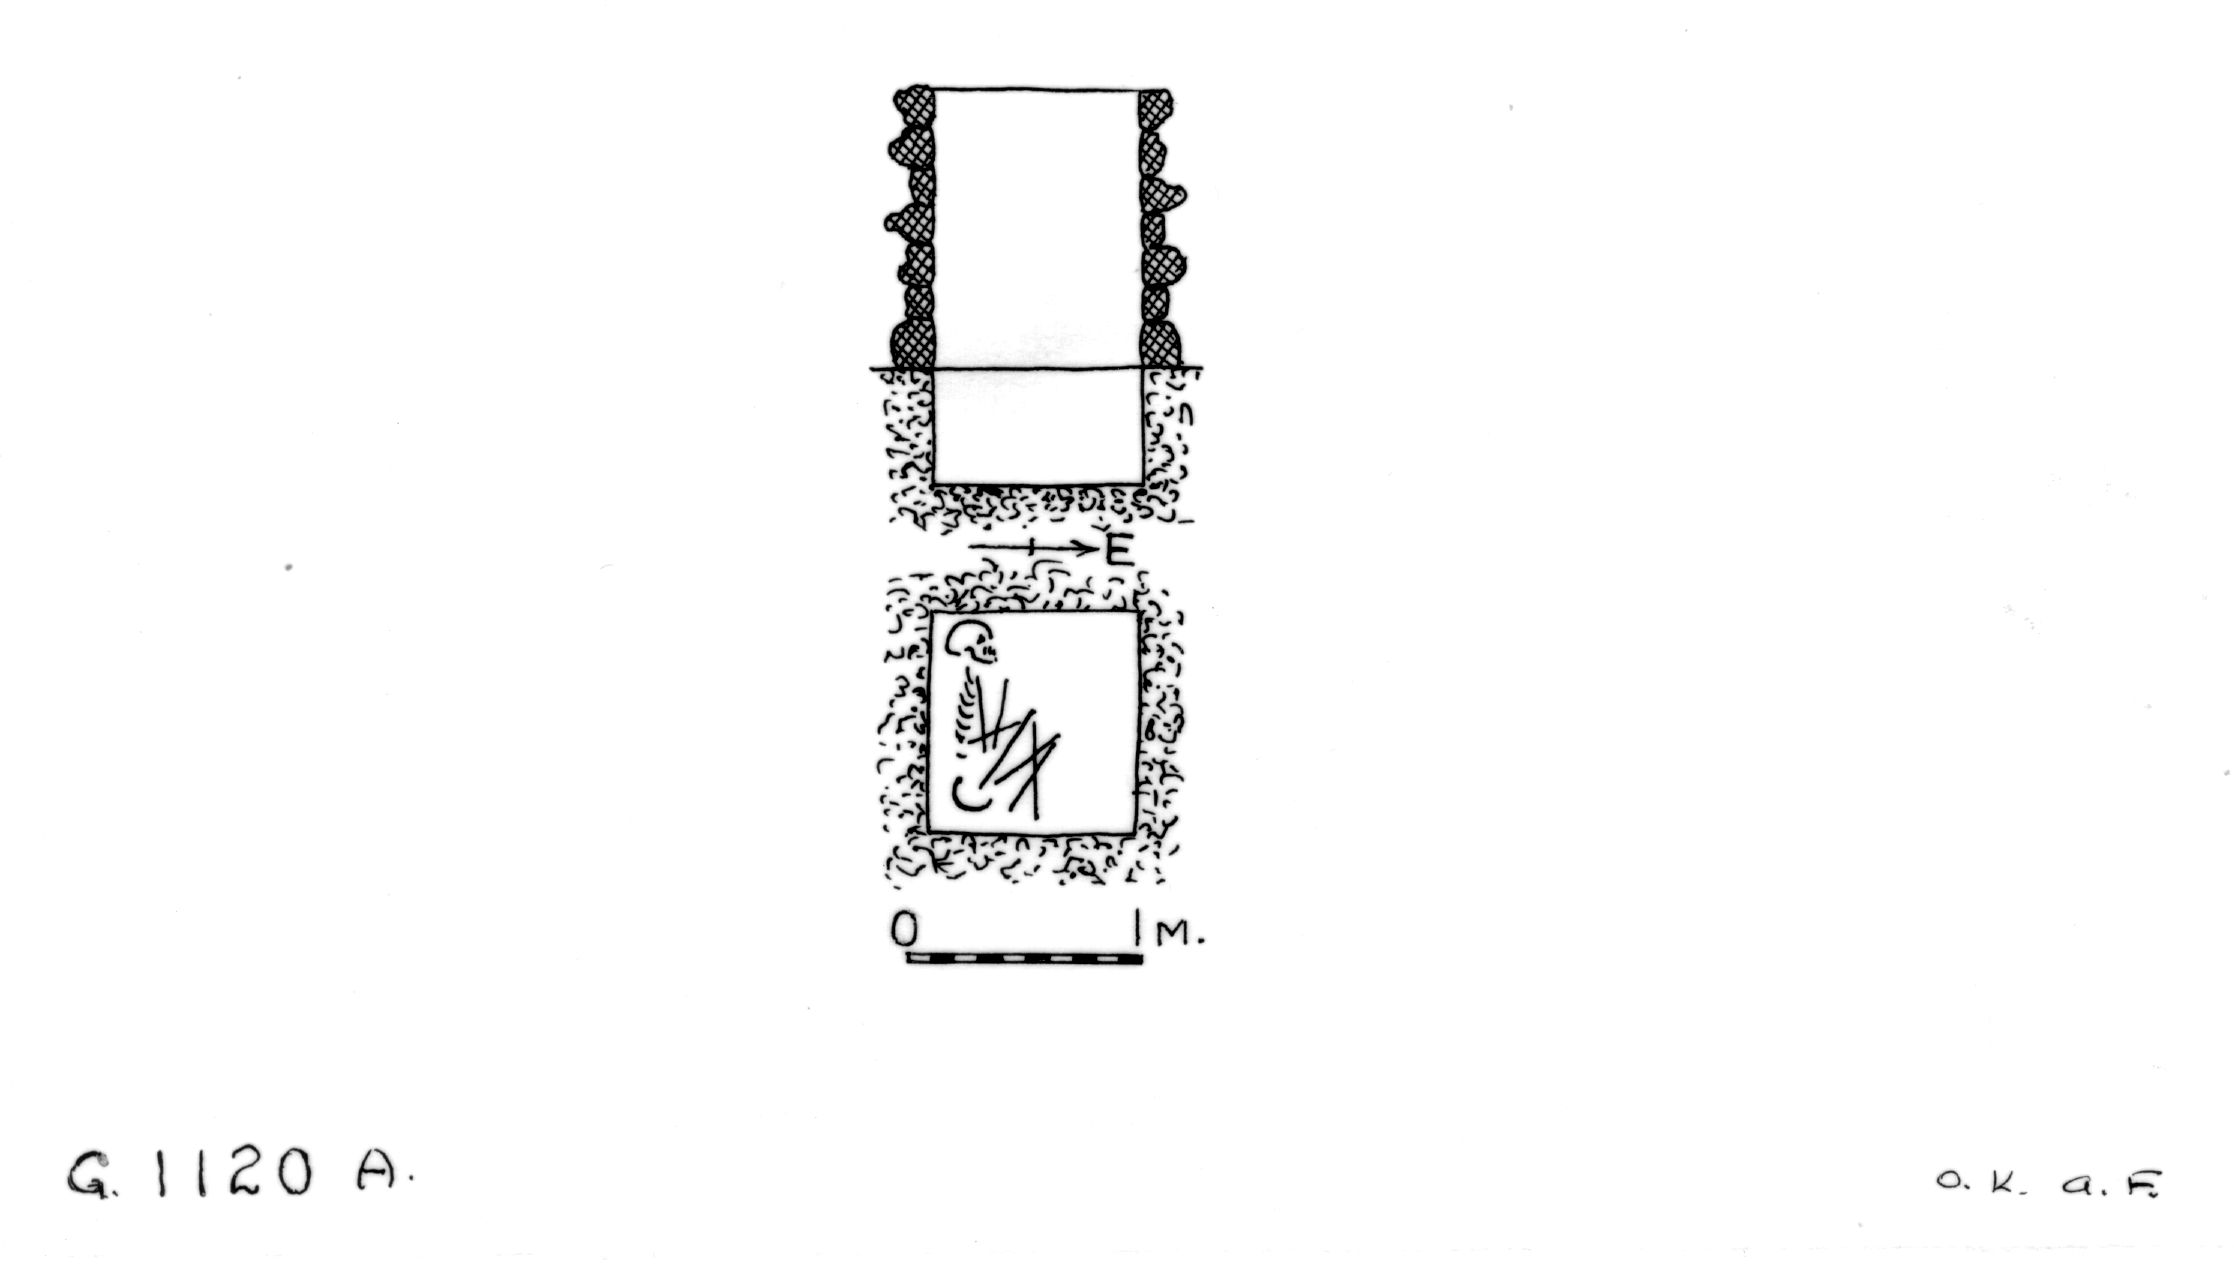 Maps and plans: G 1120, Shaft A